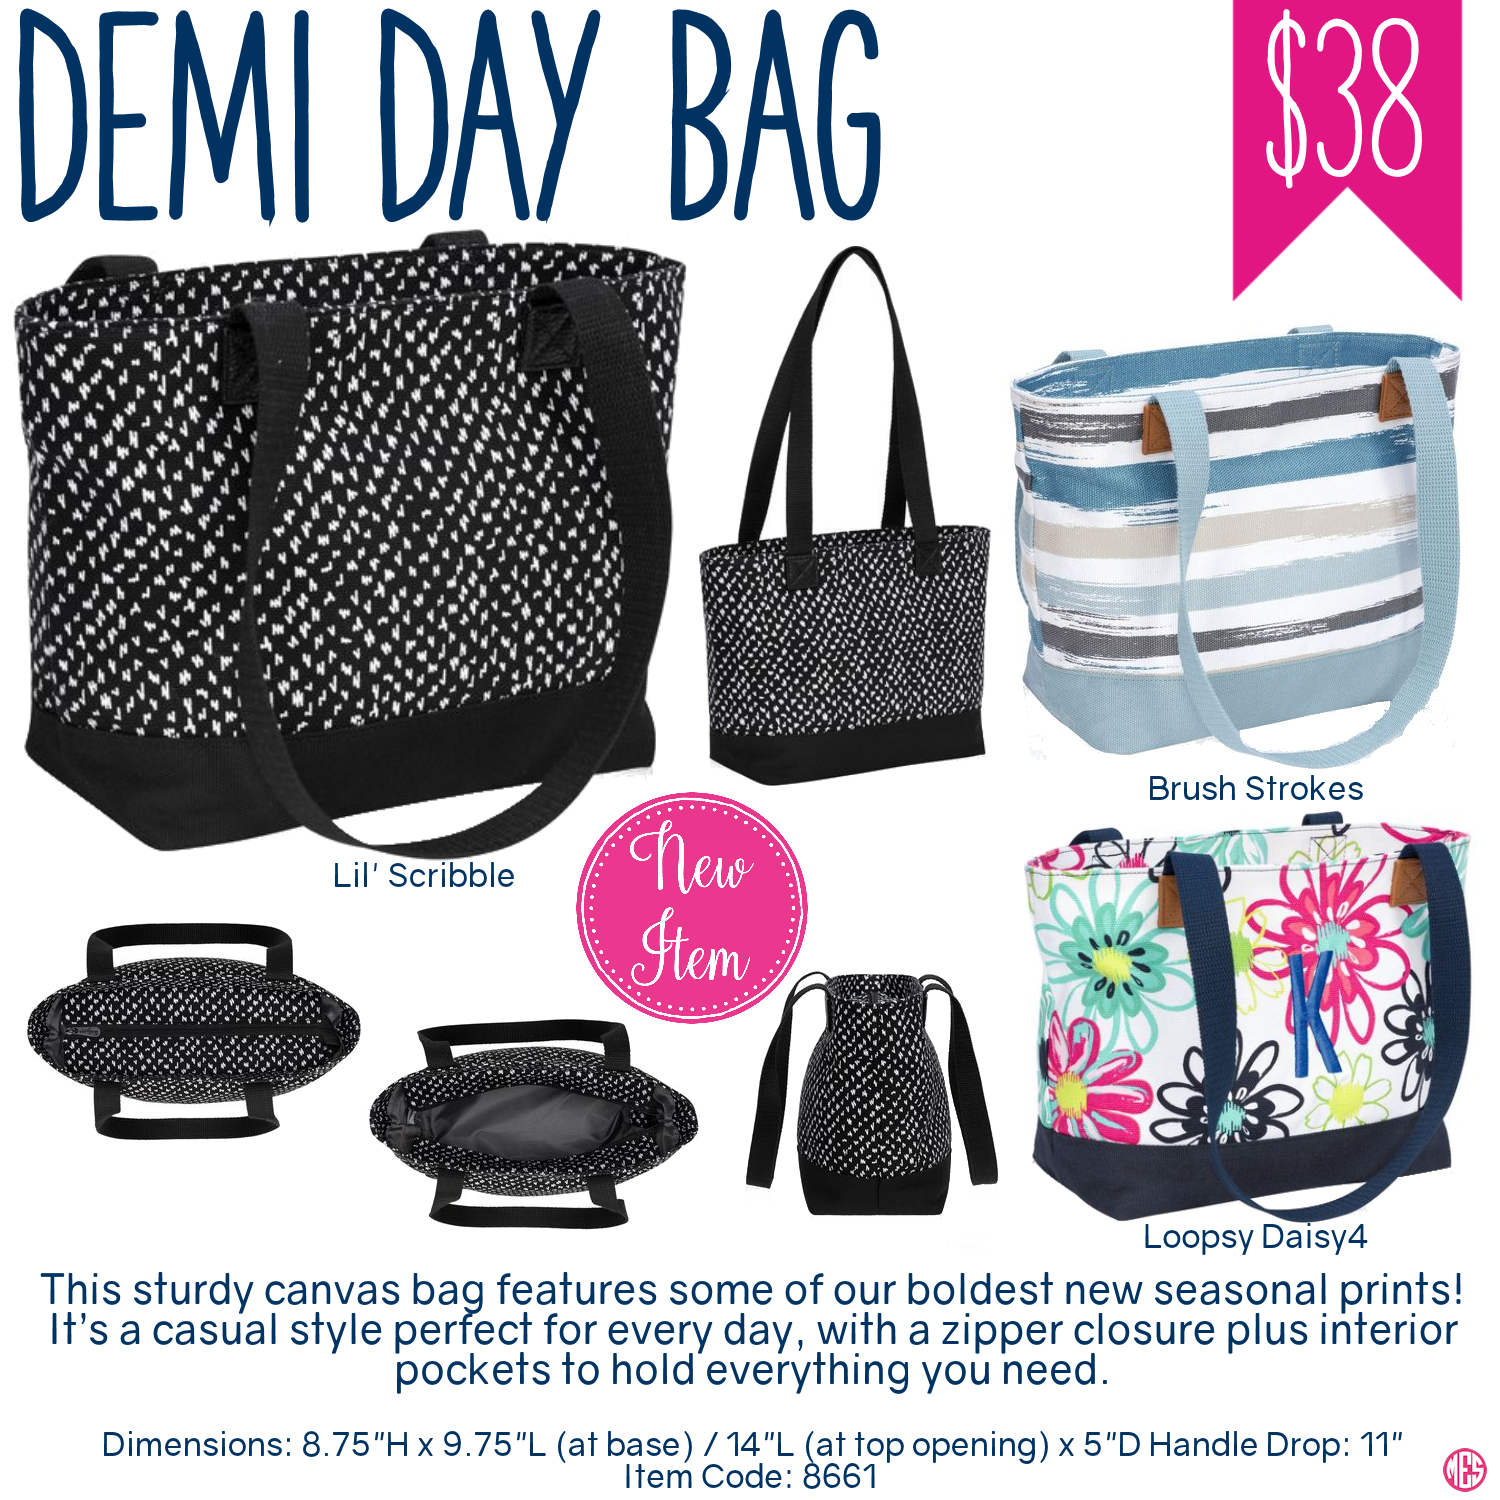 Oh snap bin ideas - Thirty One Demi Day Bag Purchase Spring Summer 2017